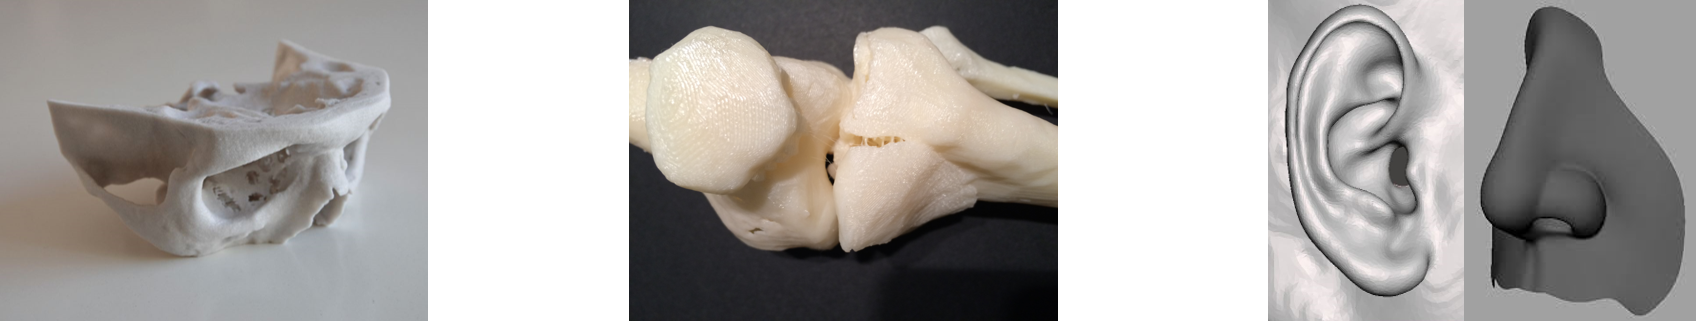 3d print tibia ear nose 1